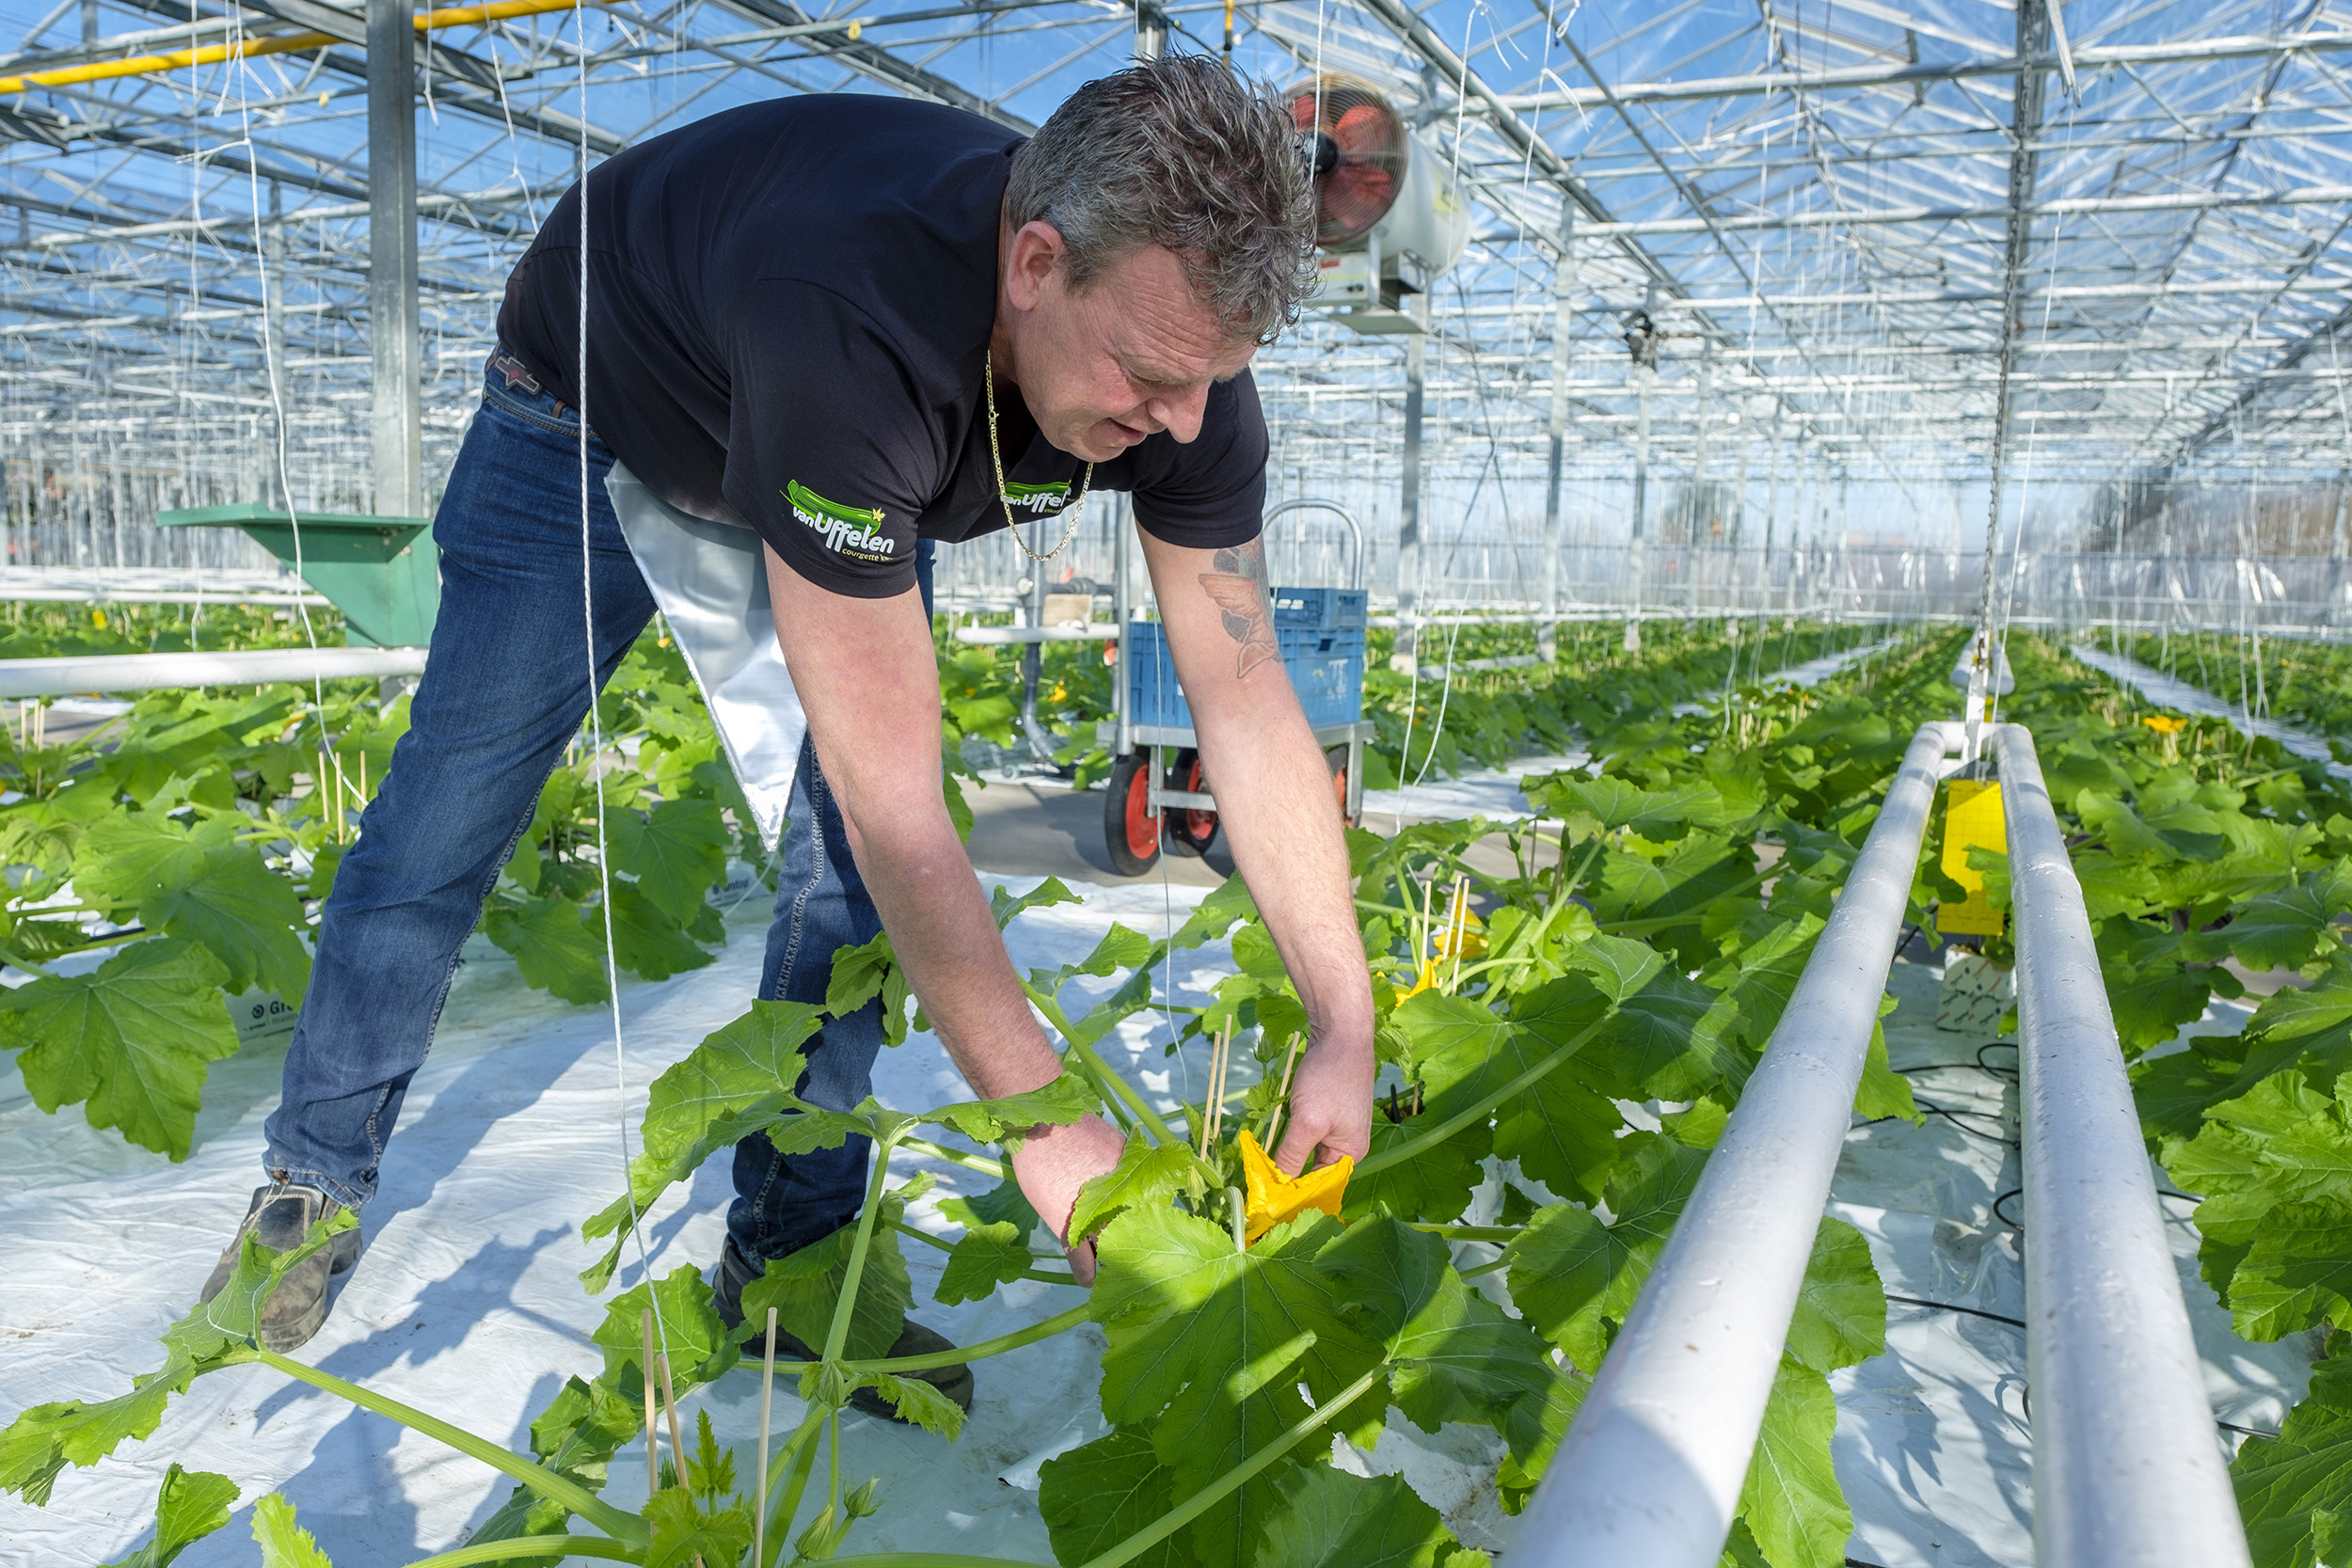 agrarisch courgette courgettes courgettekweker courgetteplant courgetteteelt kas broeikas landbouw